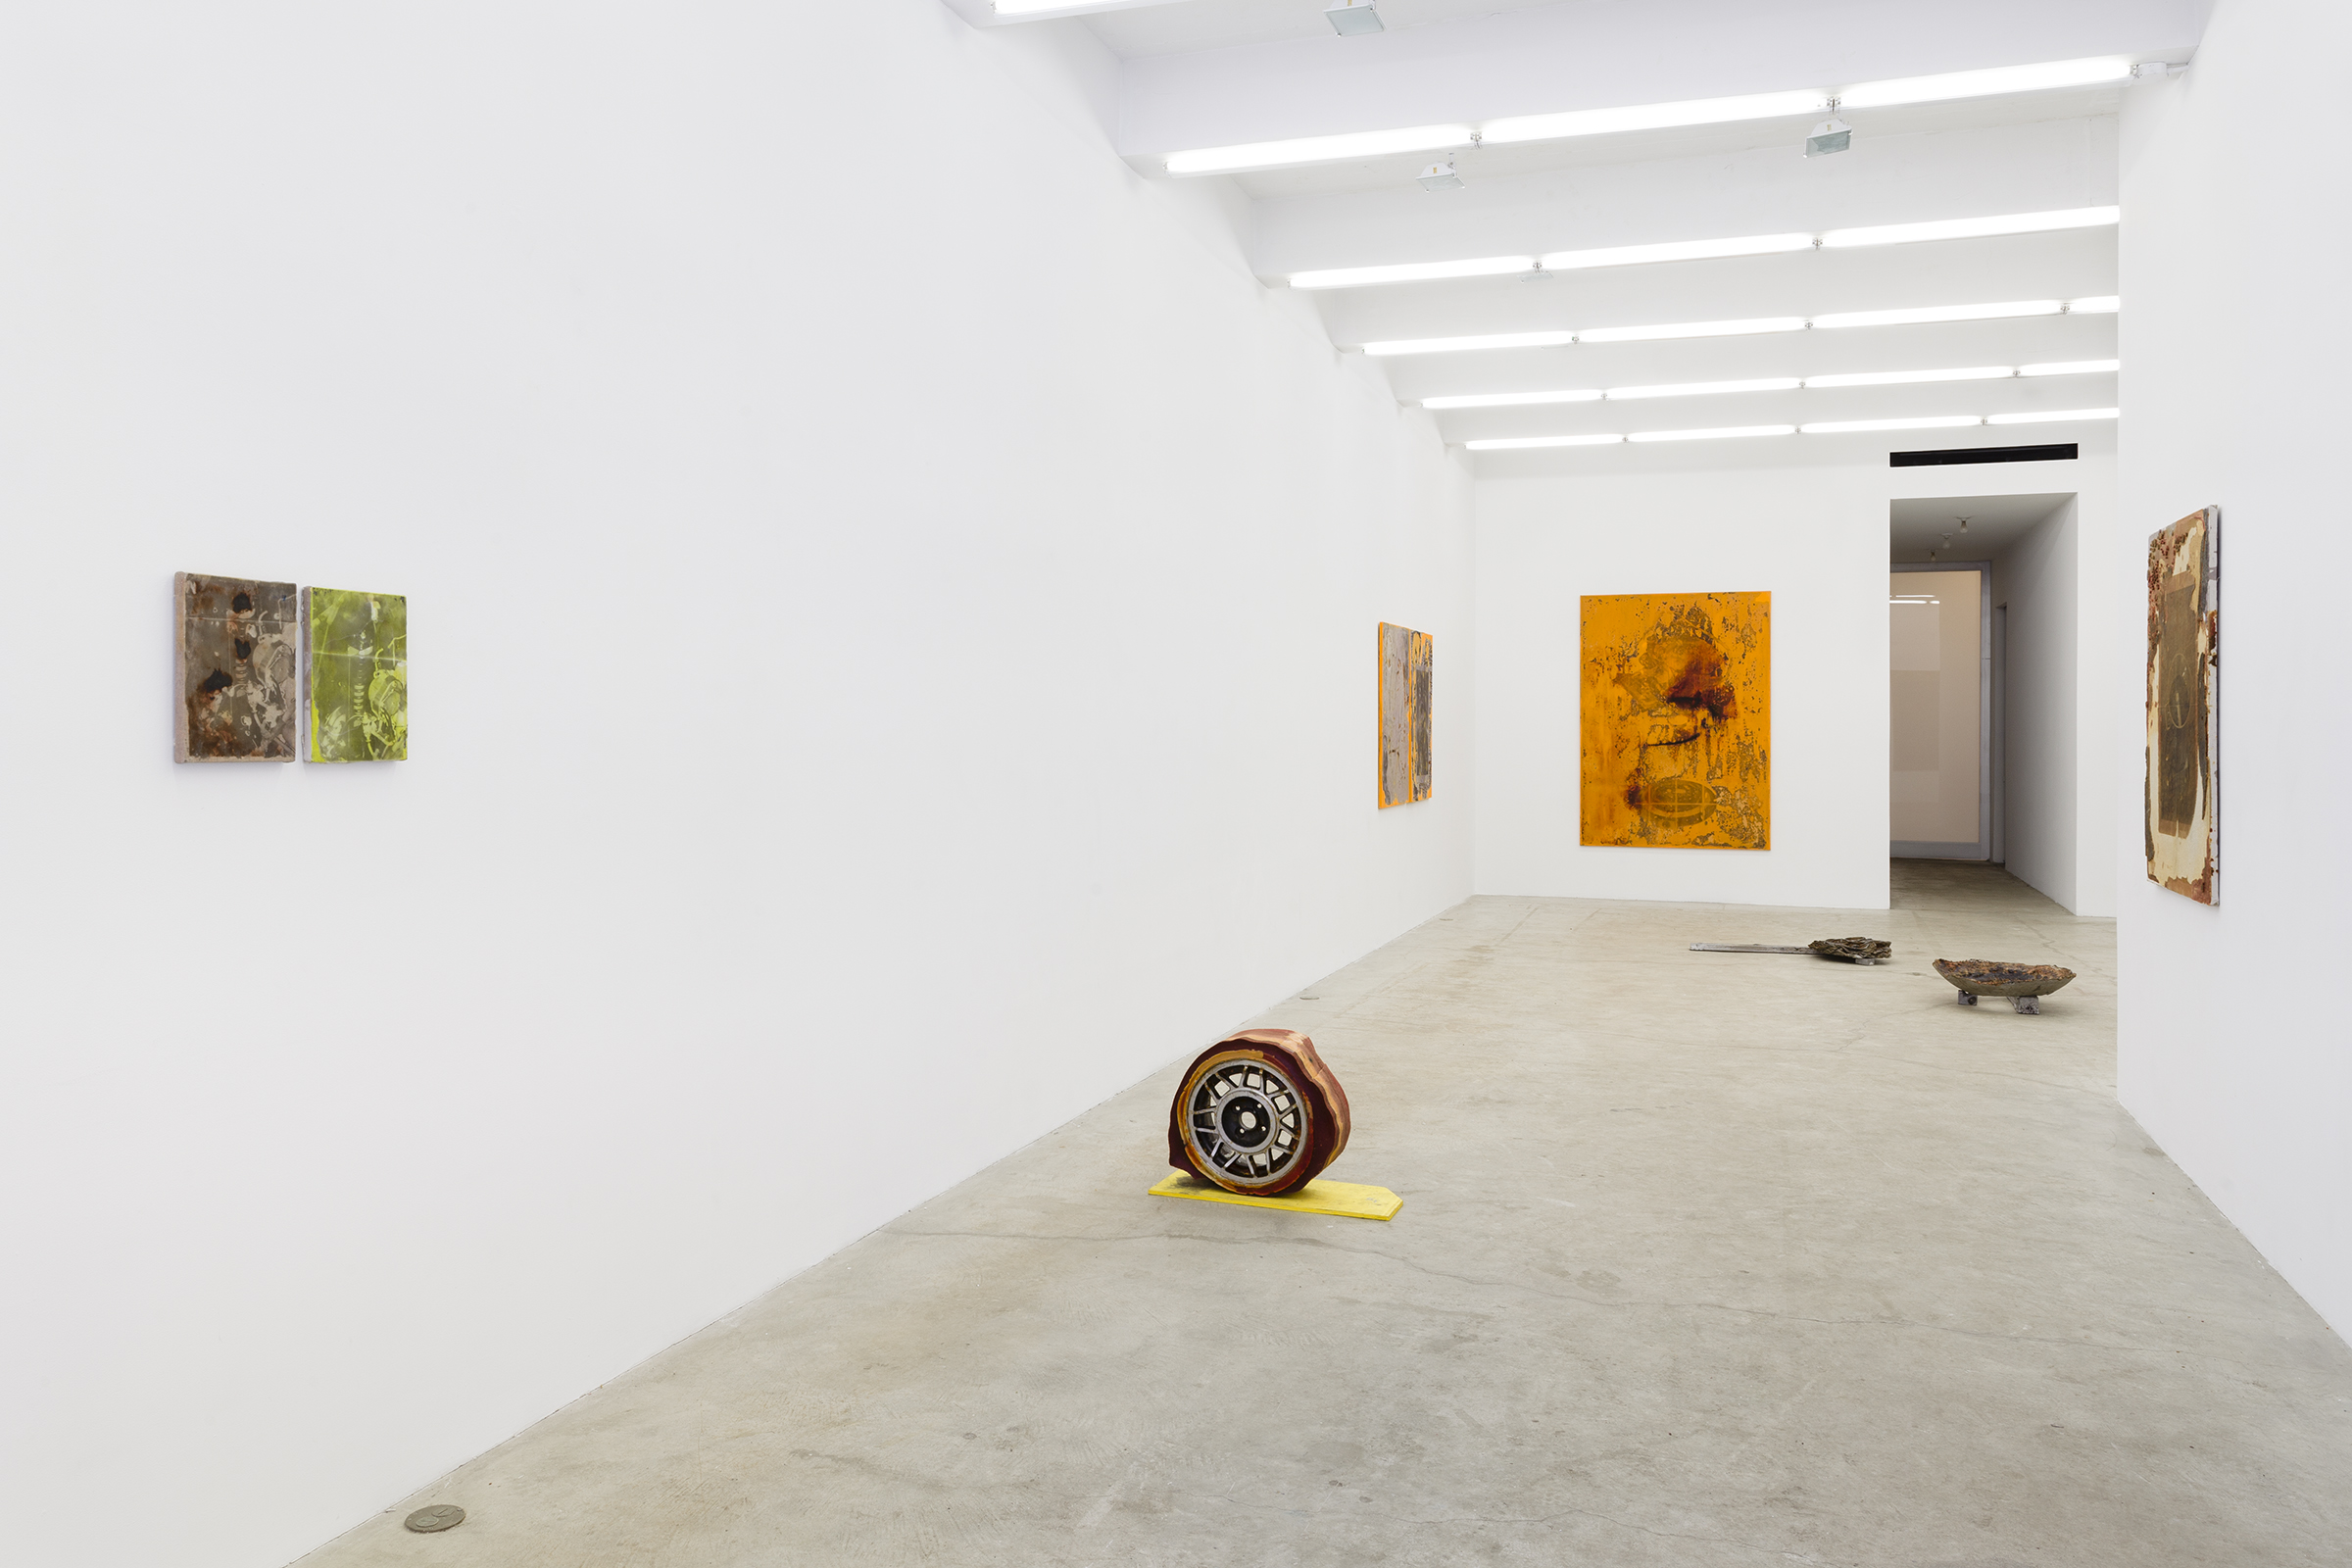 Installation view, I drive and I think and I look, but I don't know. Lanquidity , Martos Gallery, New York,2015